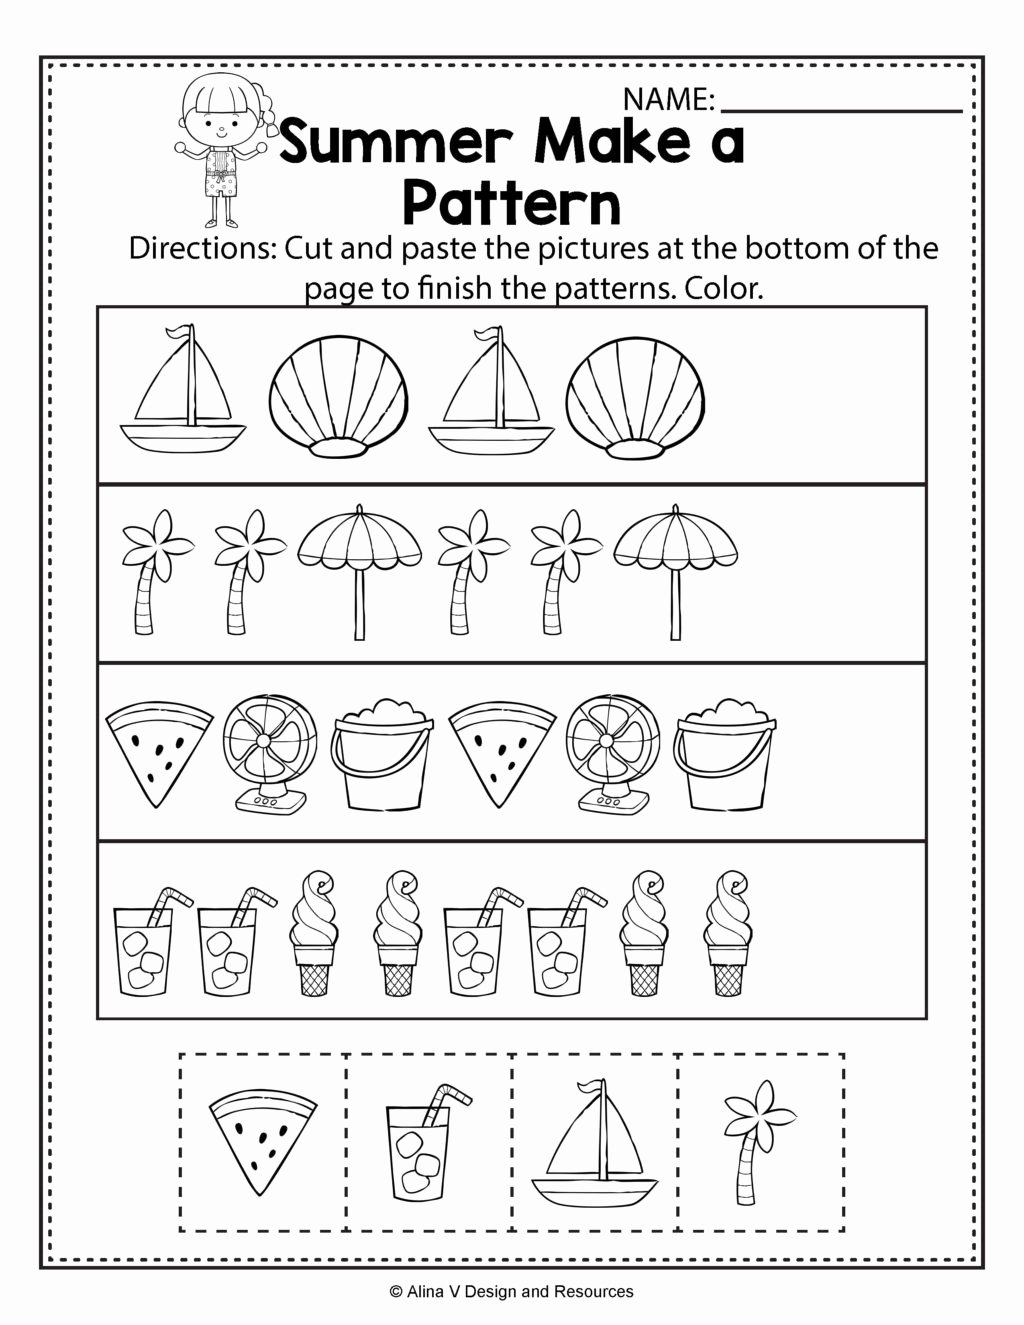 Worksheets for Preschoolers Free Download Kids Worksheet Worksheet Stunning Learningts for Preschoolers